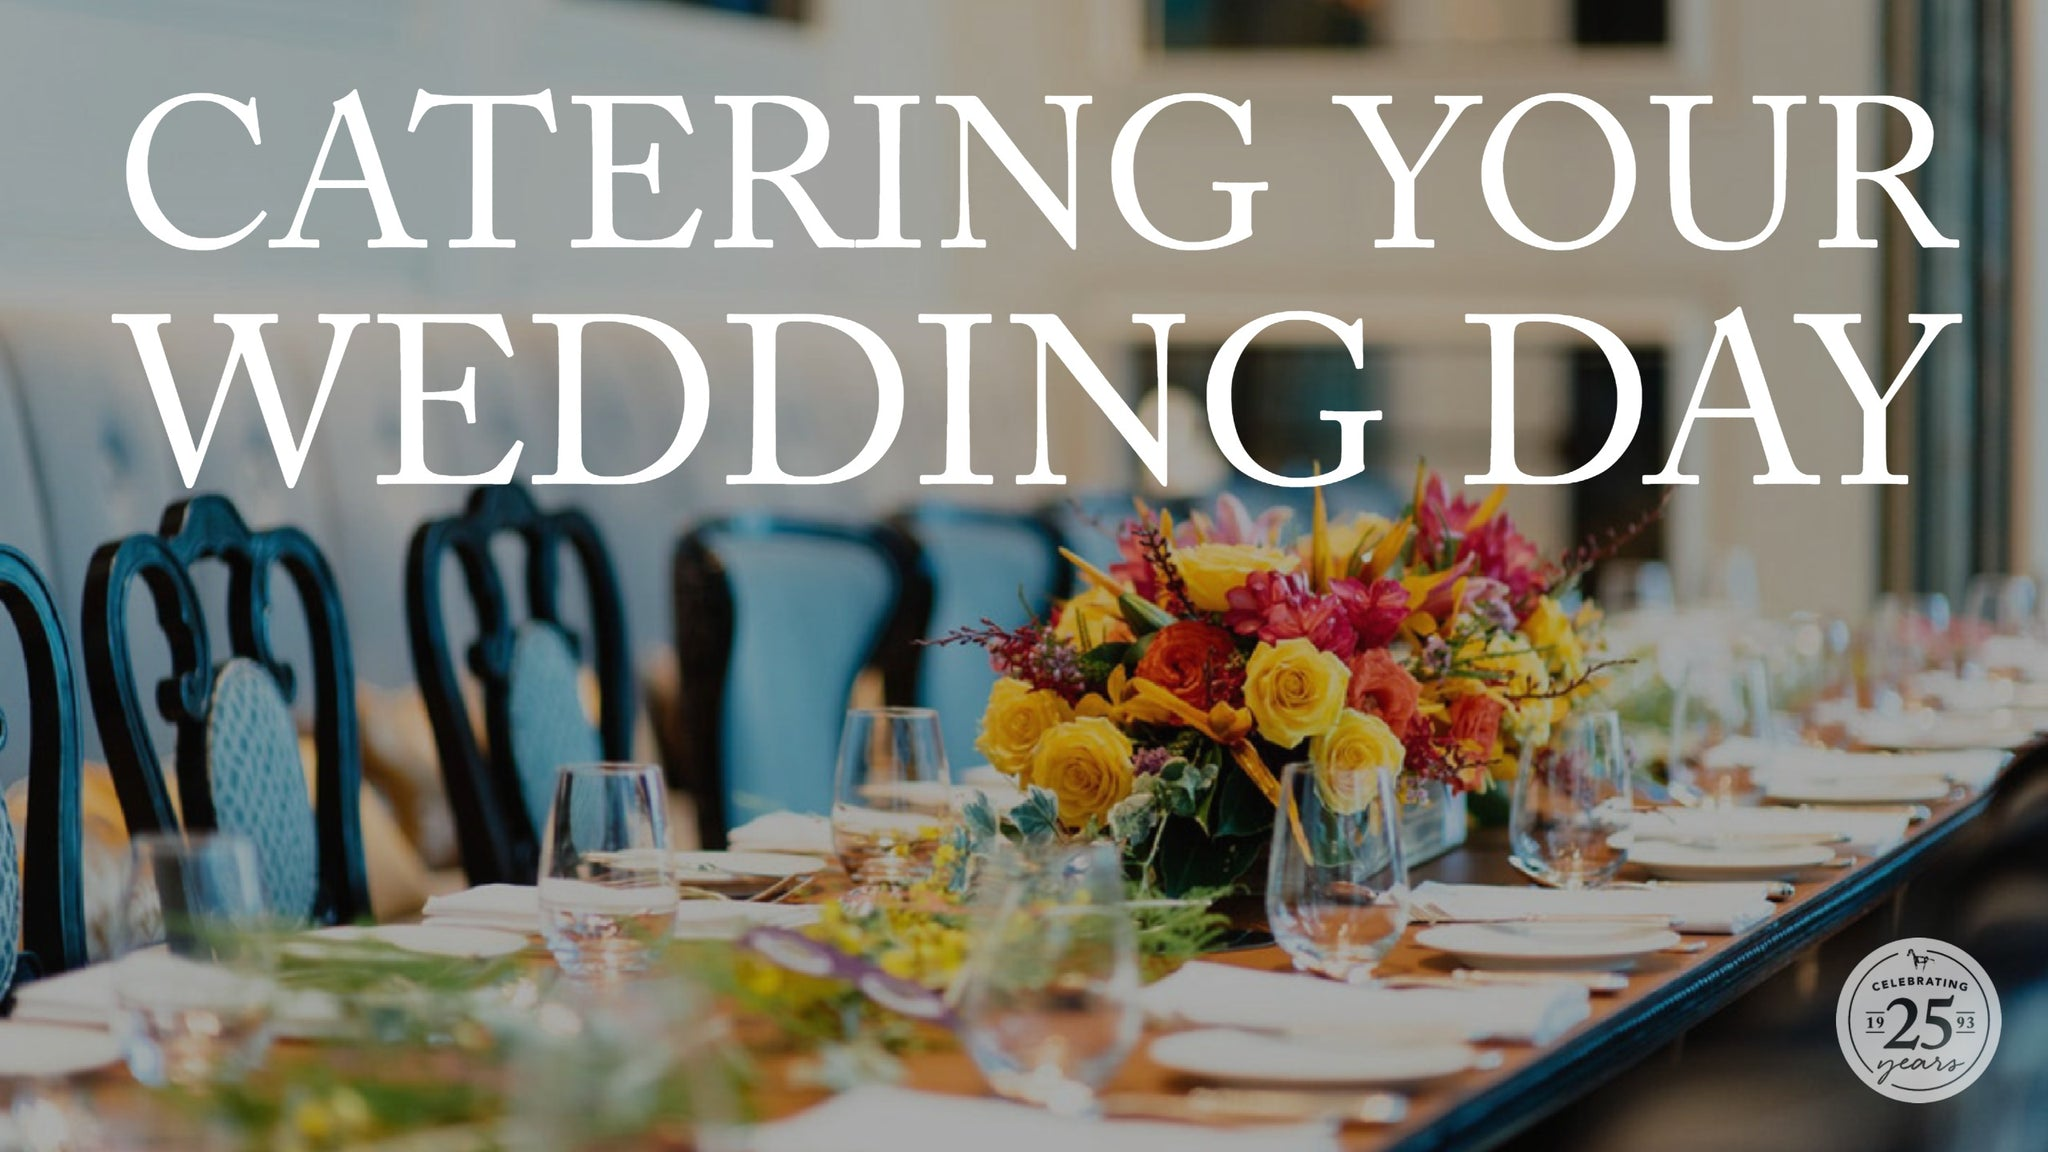 Montana Wedding Planning: Catering Your Wedding Day